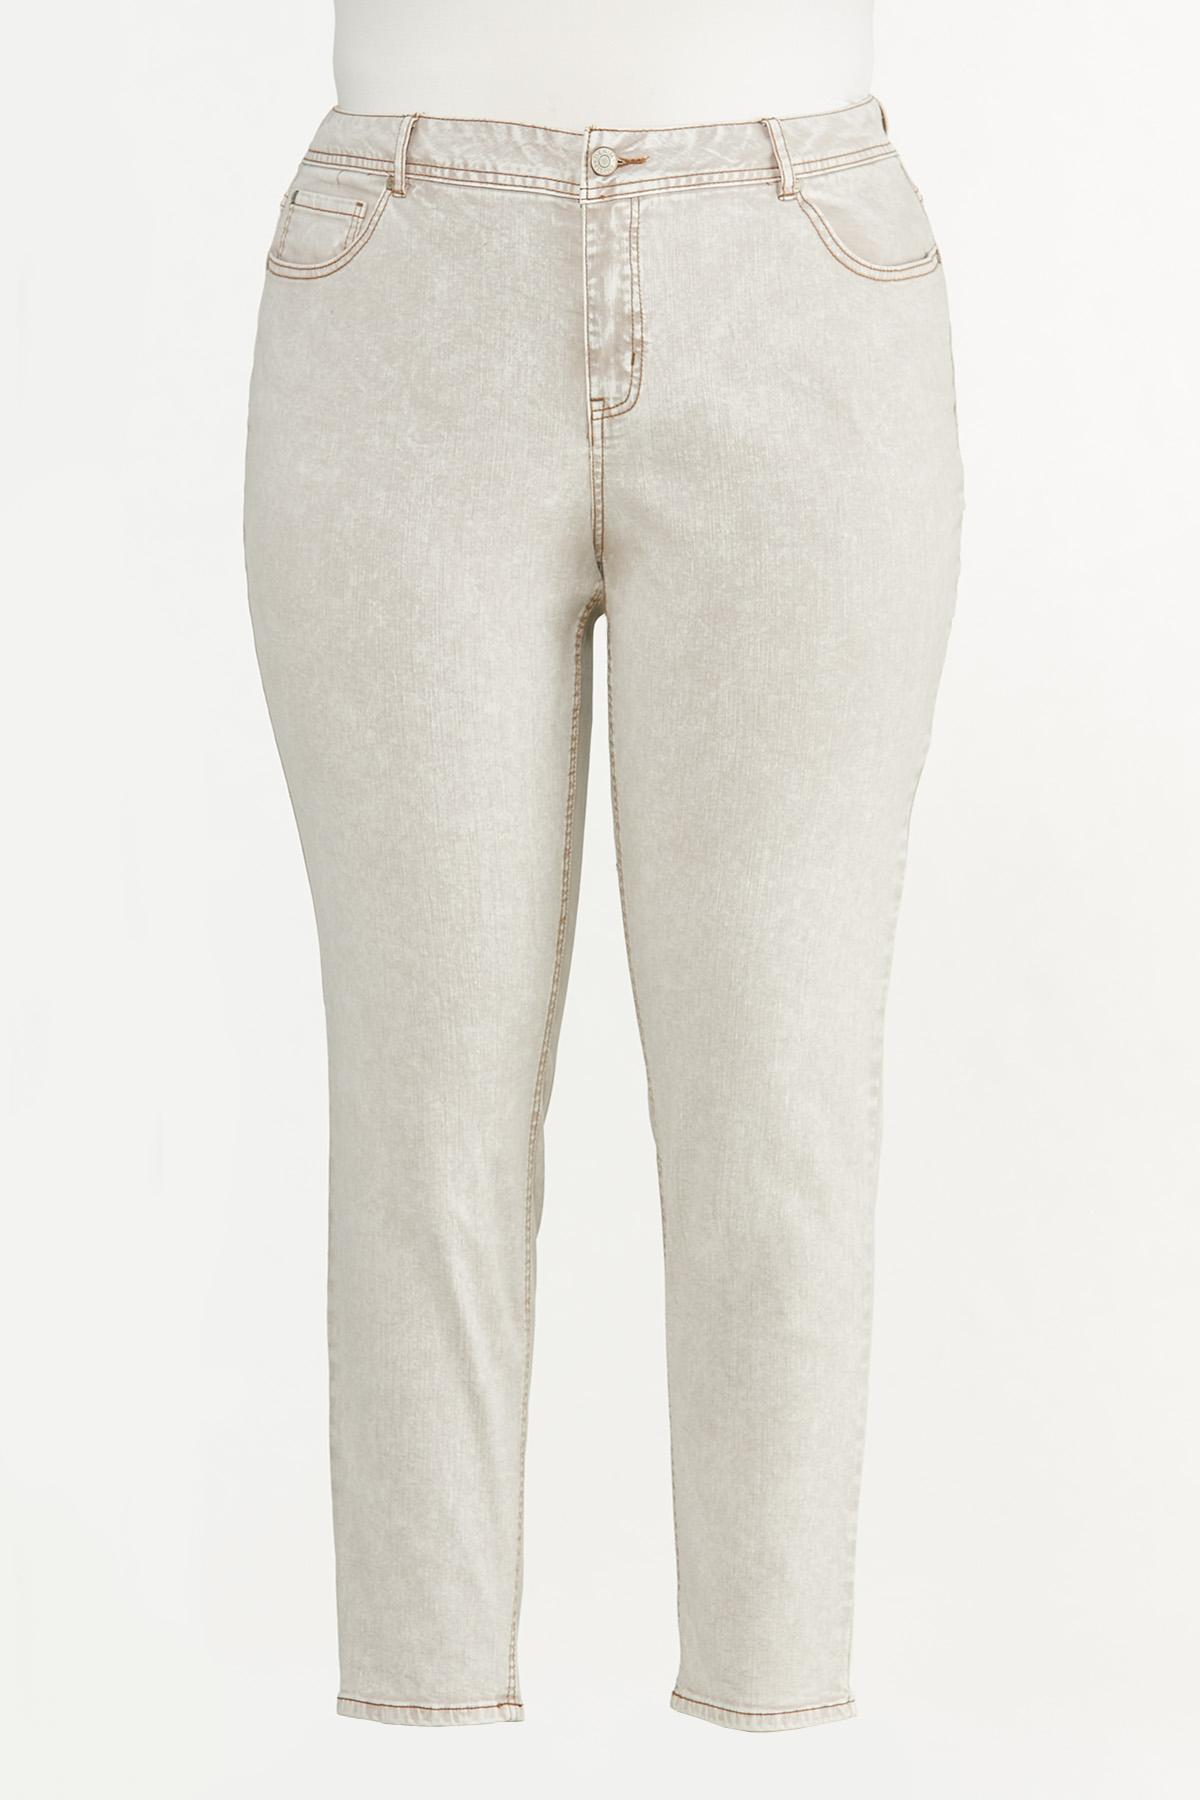 Plus Size Beige High-Rise Skinny Jeans